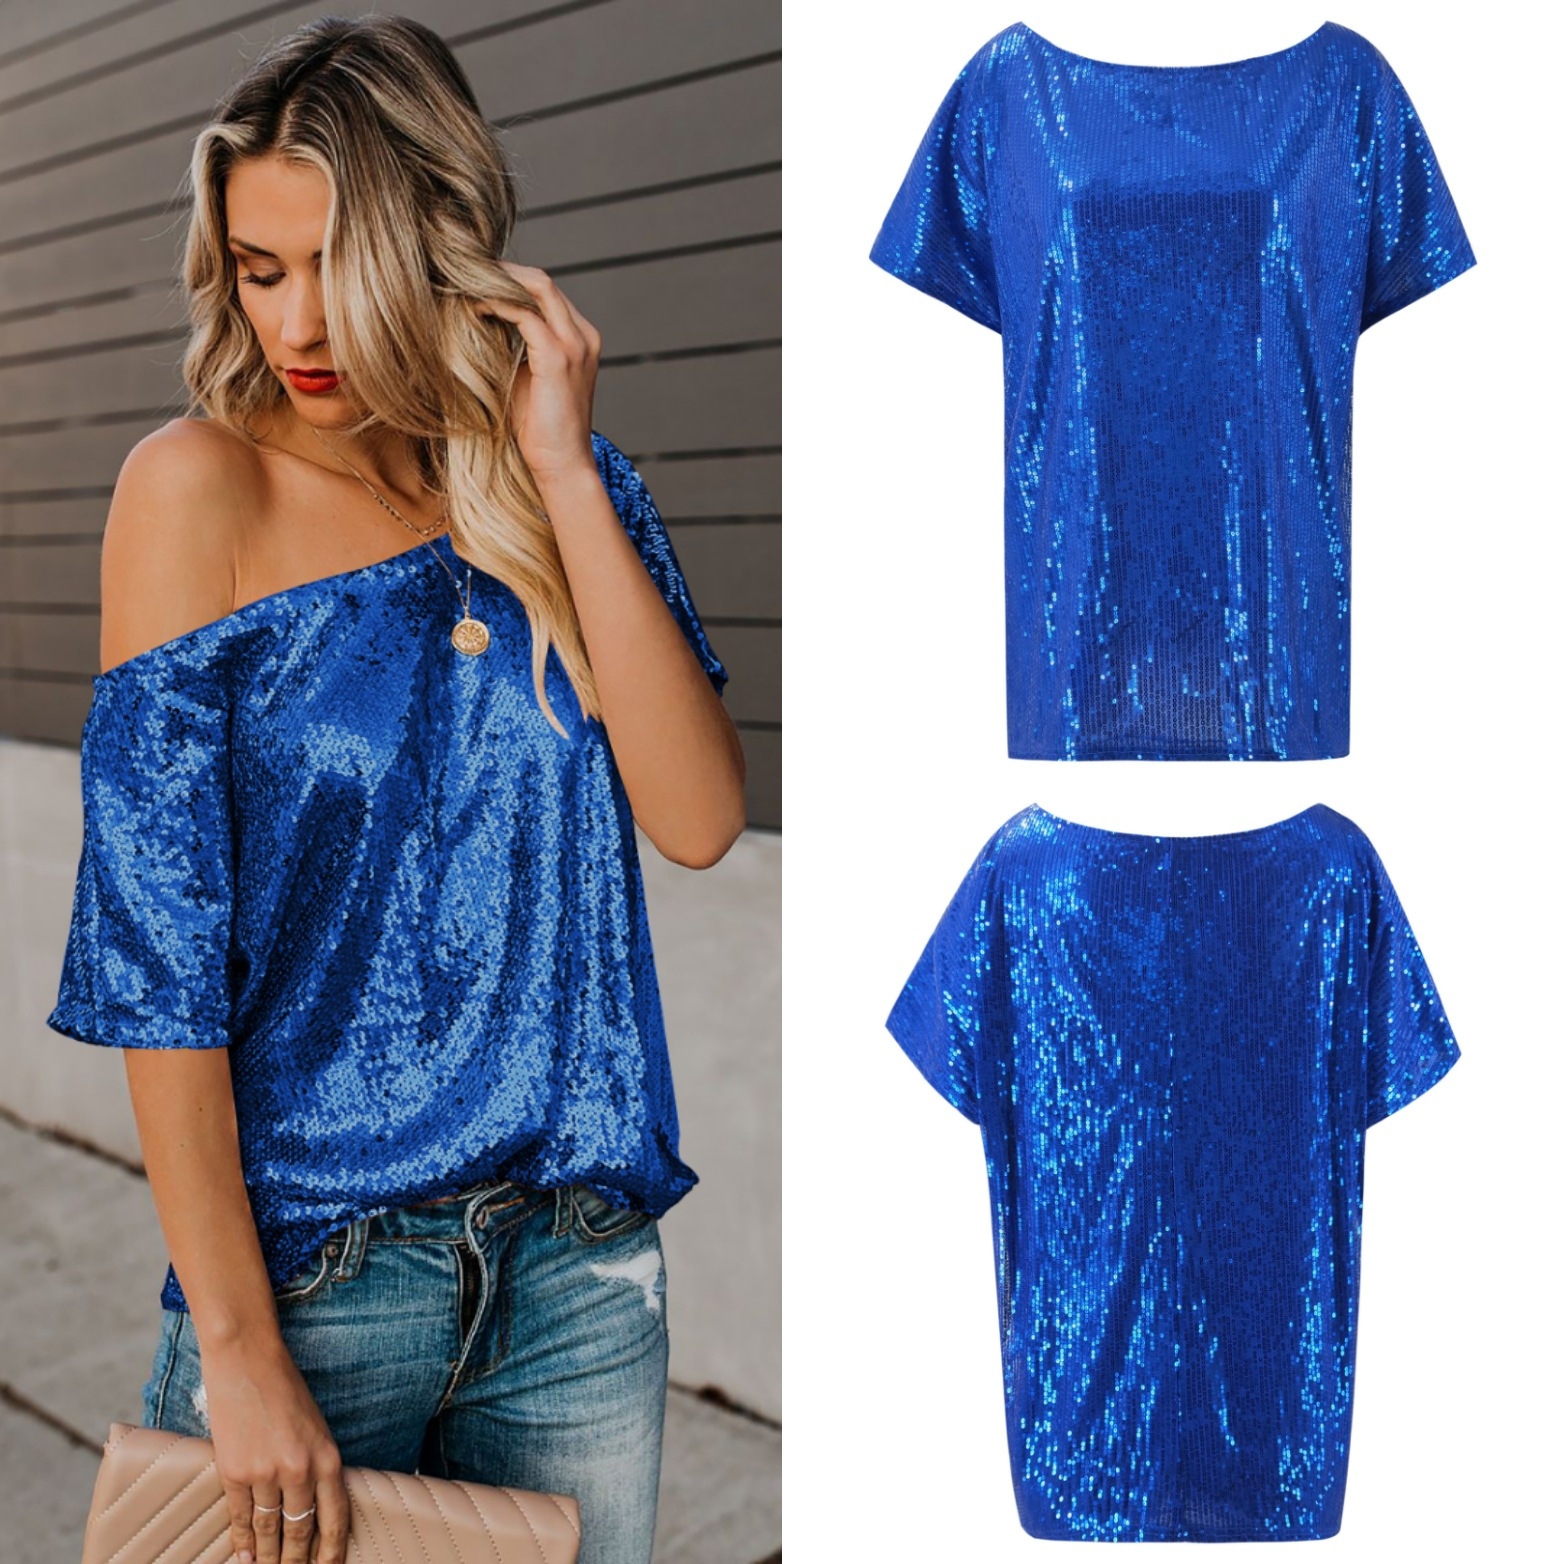 Sequin Tshirt Silver Sequin Top Club Party Women Shirt Camiseta Mujer Verano Short Sleeve Magliette Donna Pink Black Gold Blue